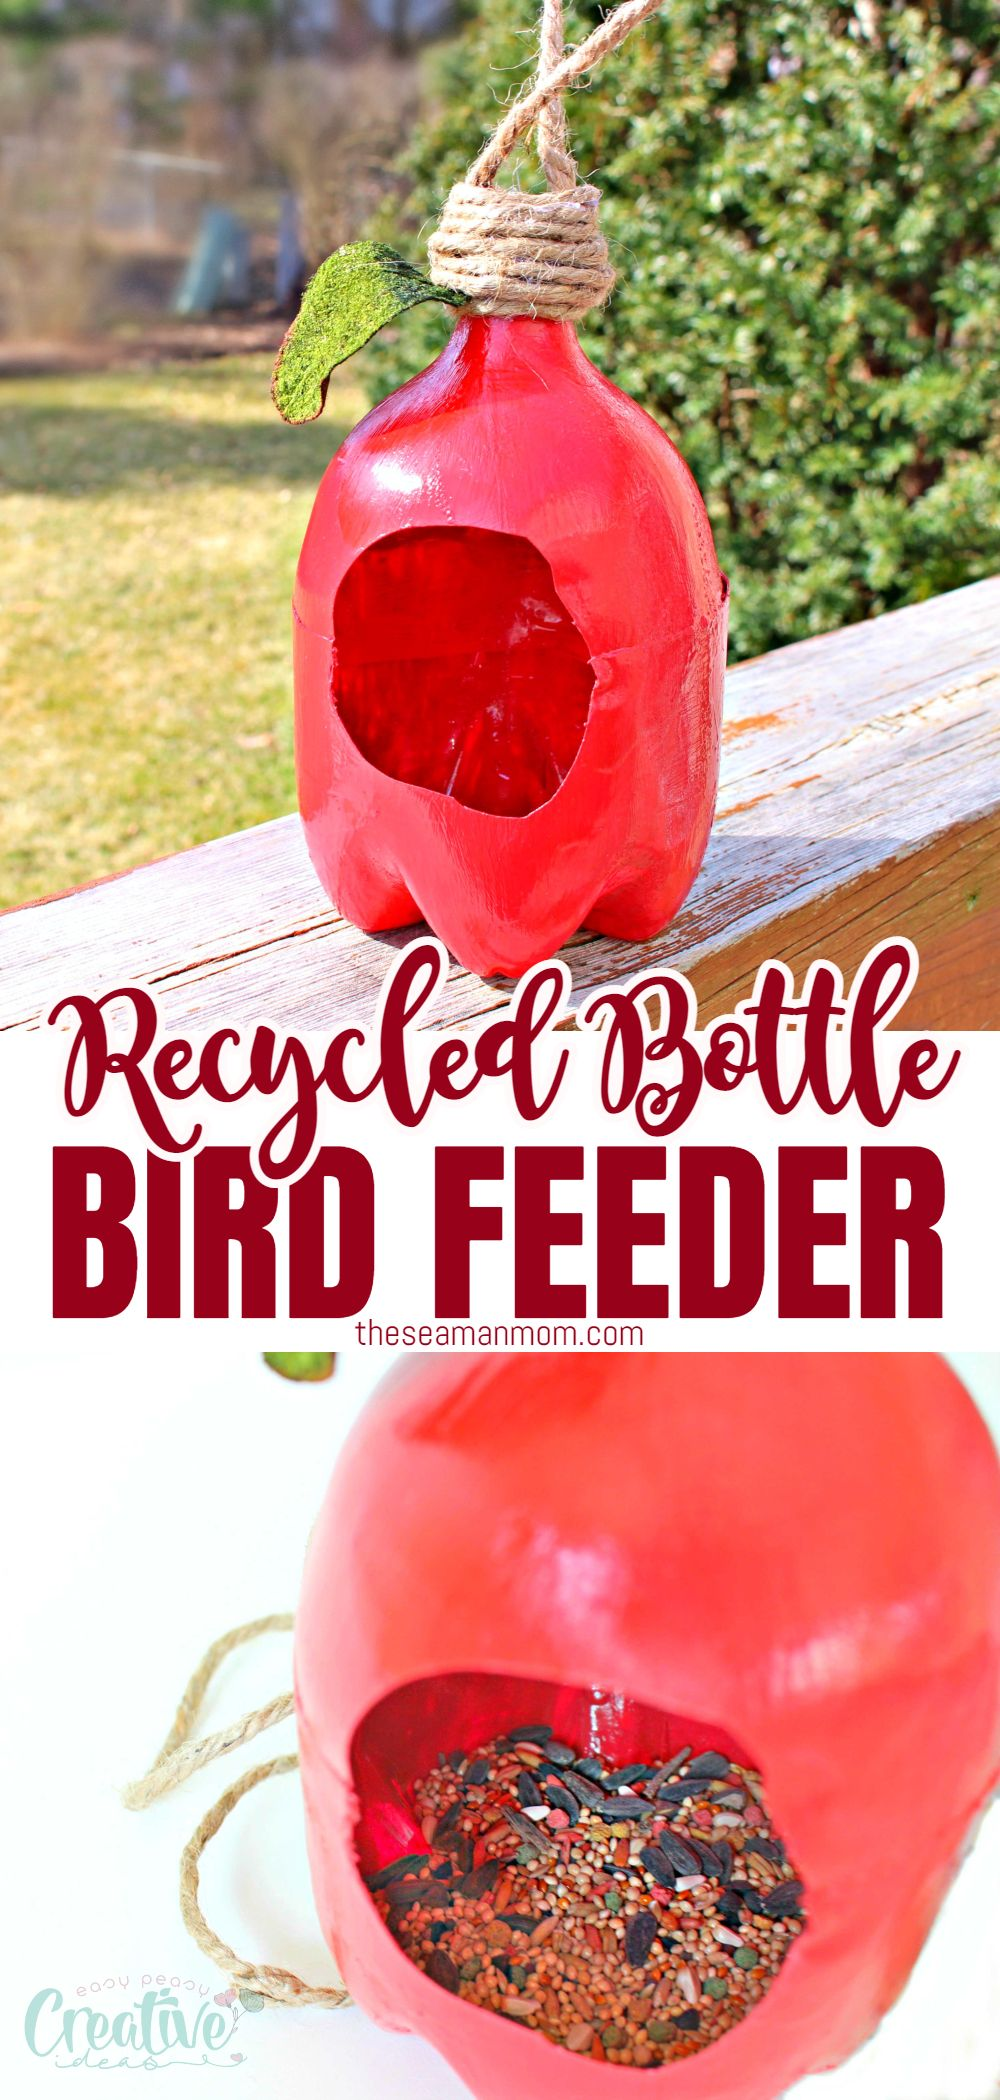 Get the birds to flock around your garden this spring and summer when making this adorable plastic bottle bird feeder! A great way to upcycle while having fun with the kiddos! via @petroneagu